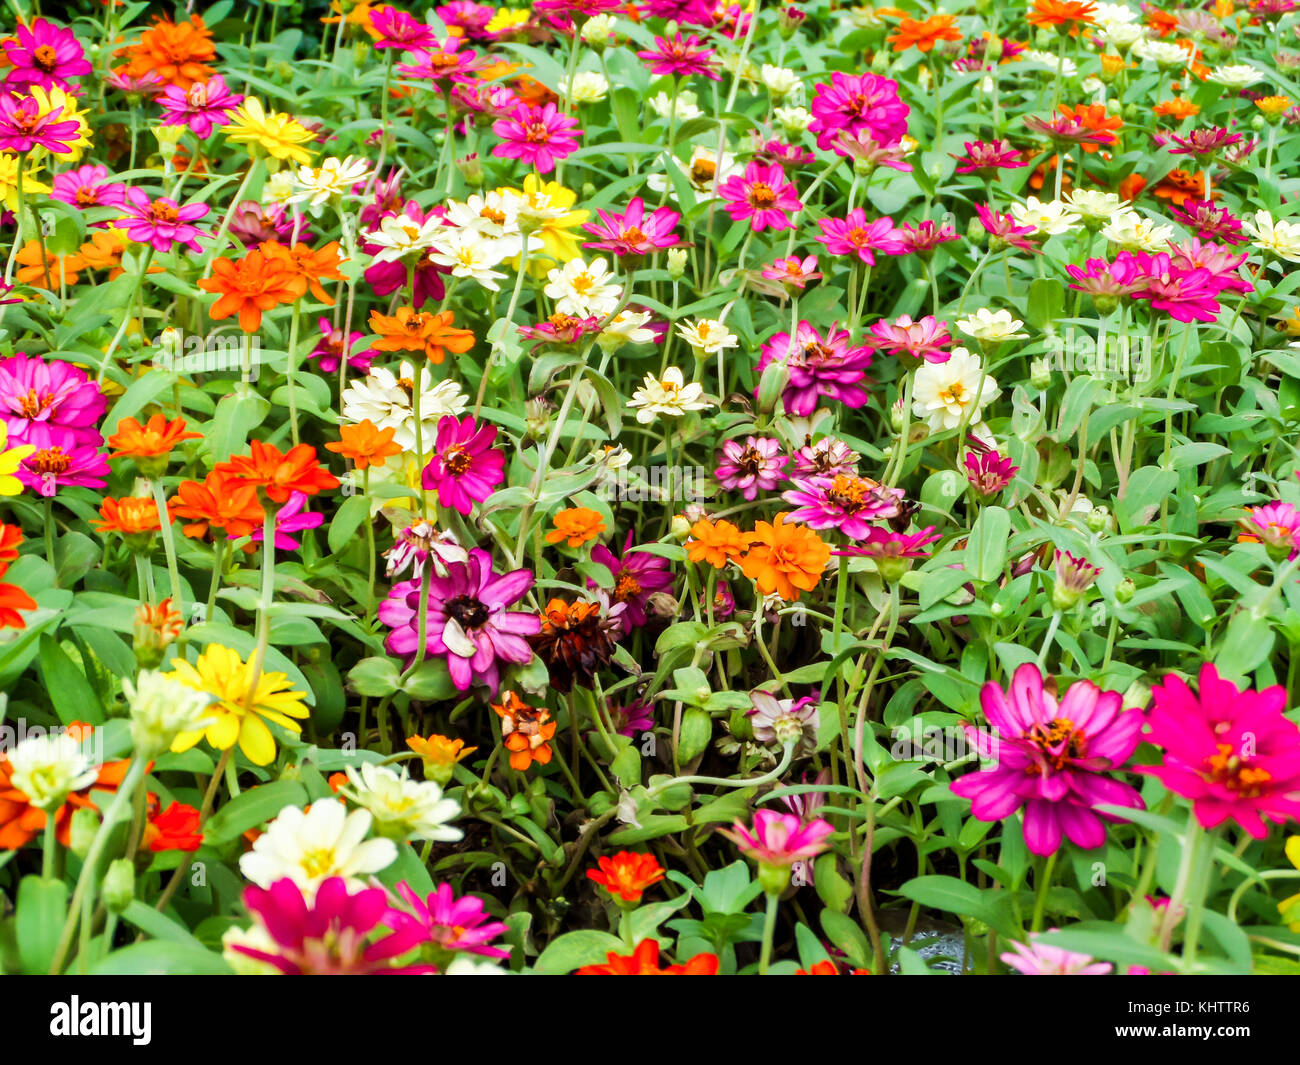 The Zinnia Flower Is One Of The Easiest Flowers To Grow In The Stock